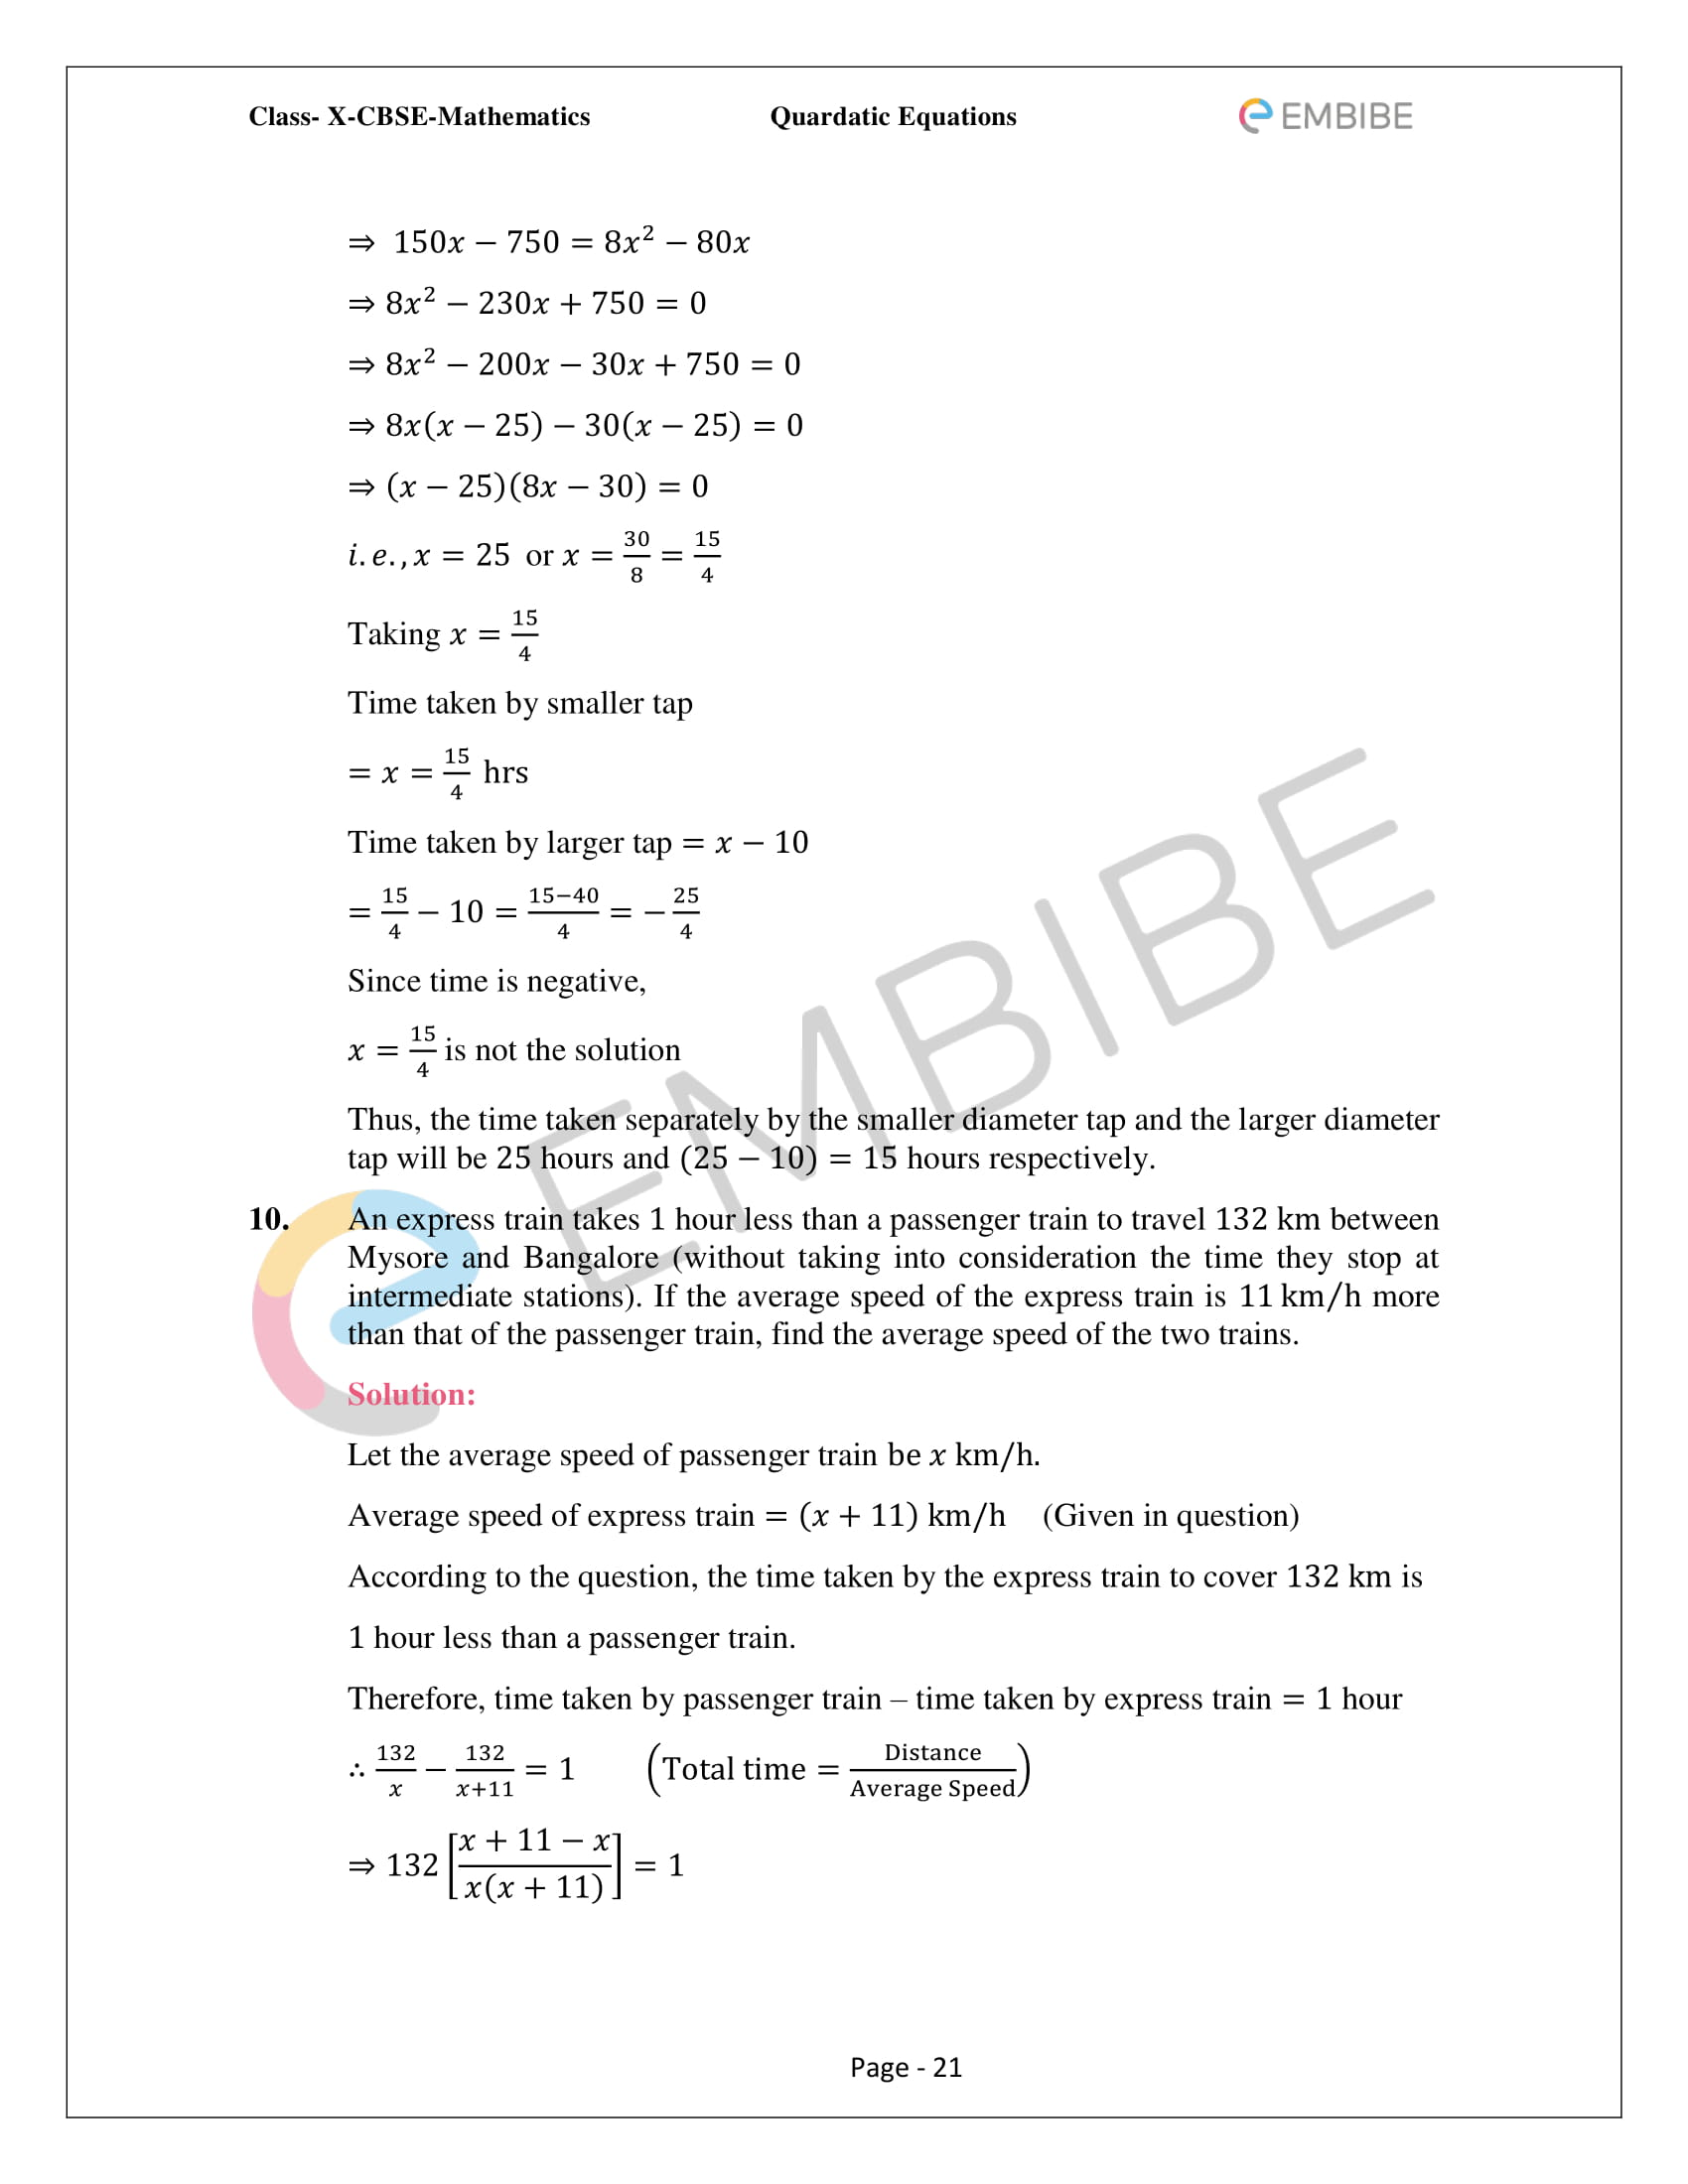 CBSE NCERT Solutions For Class 10 Maths Chapter 4 – Quadratic Equations - 21